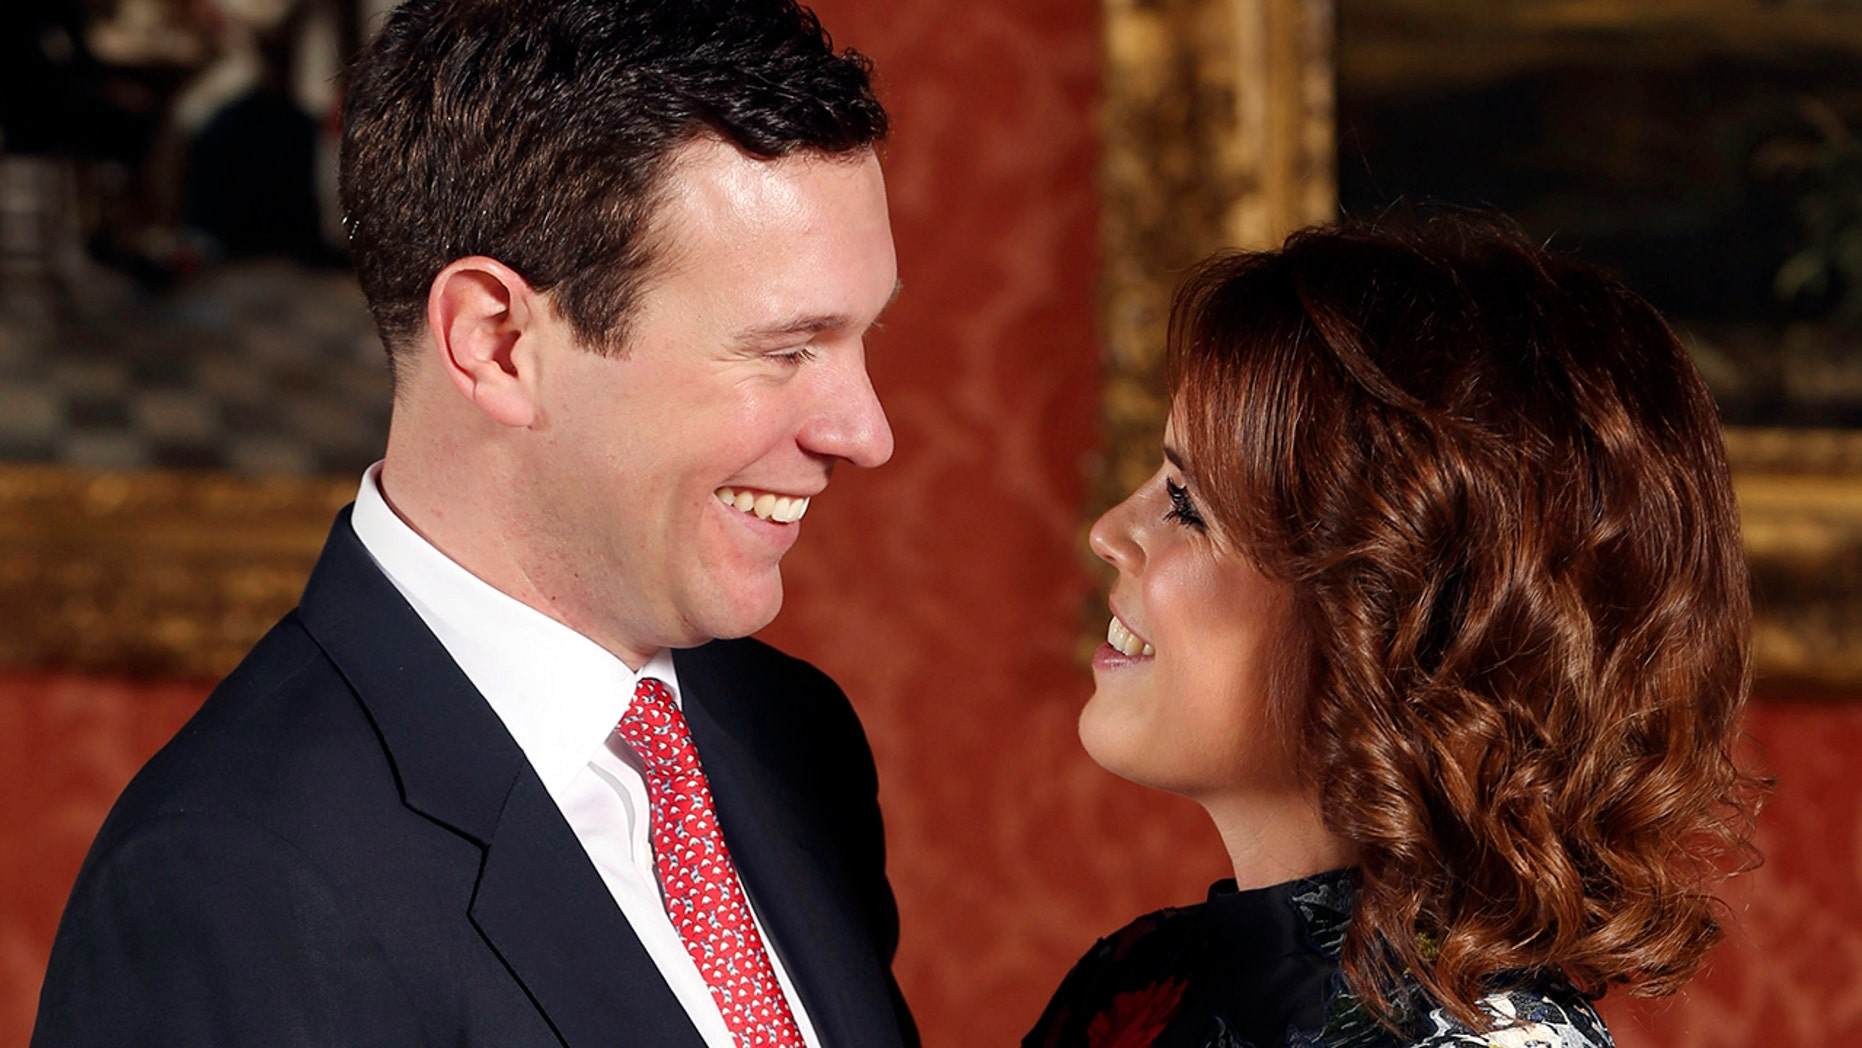 Princess Eugenie and Jack Brooksbank will marry on October 19 at St. George's chapel in Windsor. Here, the couple poses for their engagement photo on Jan. 22.